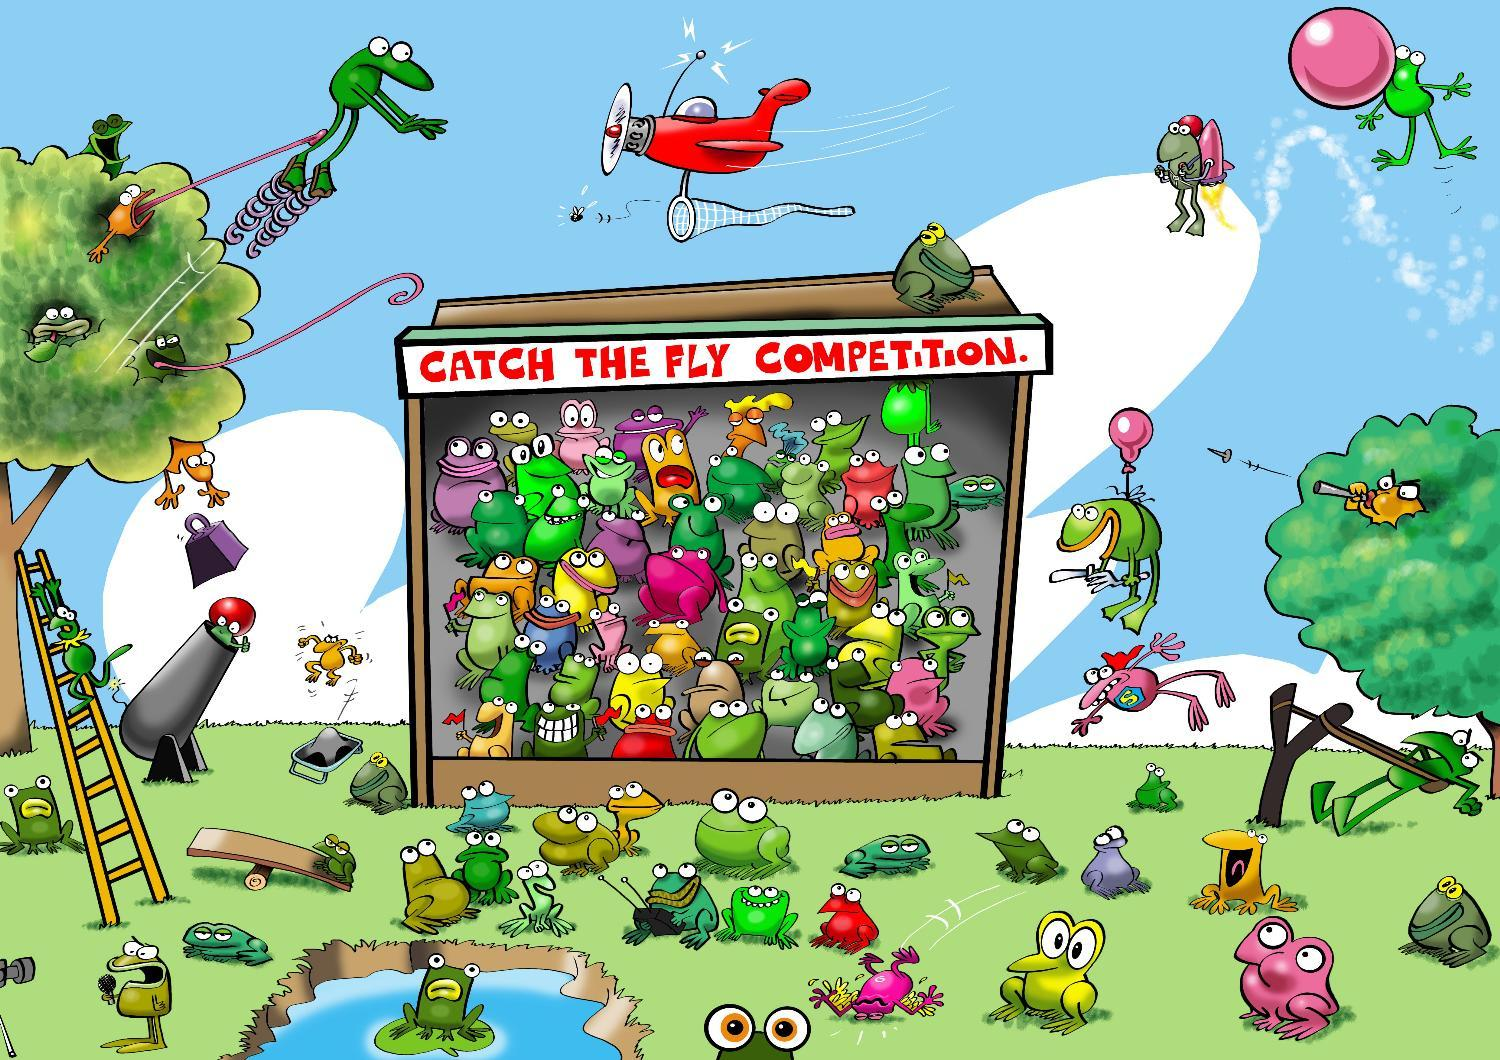 Cartoon frogs playing catch the fly competition